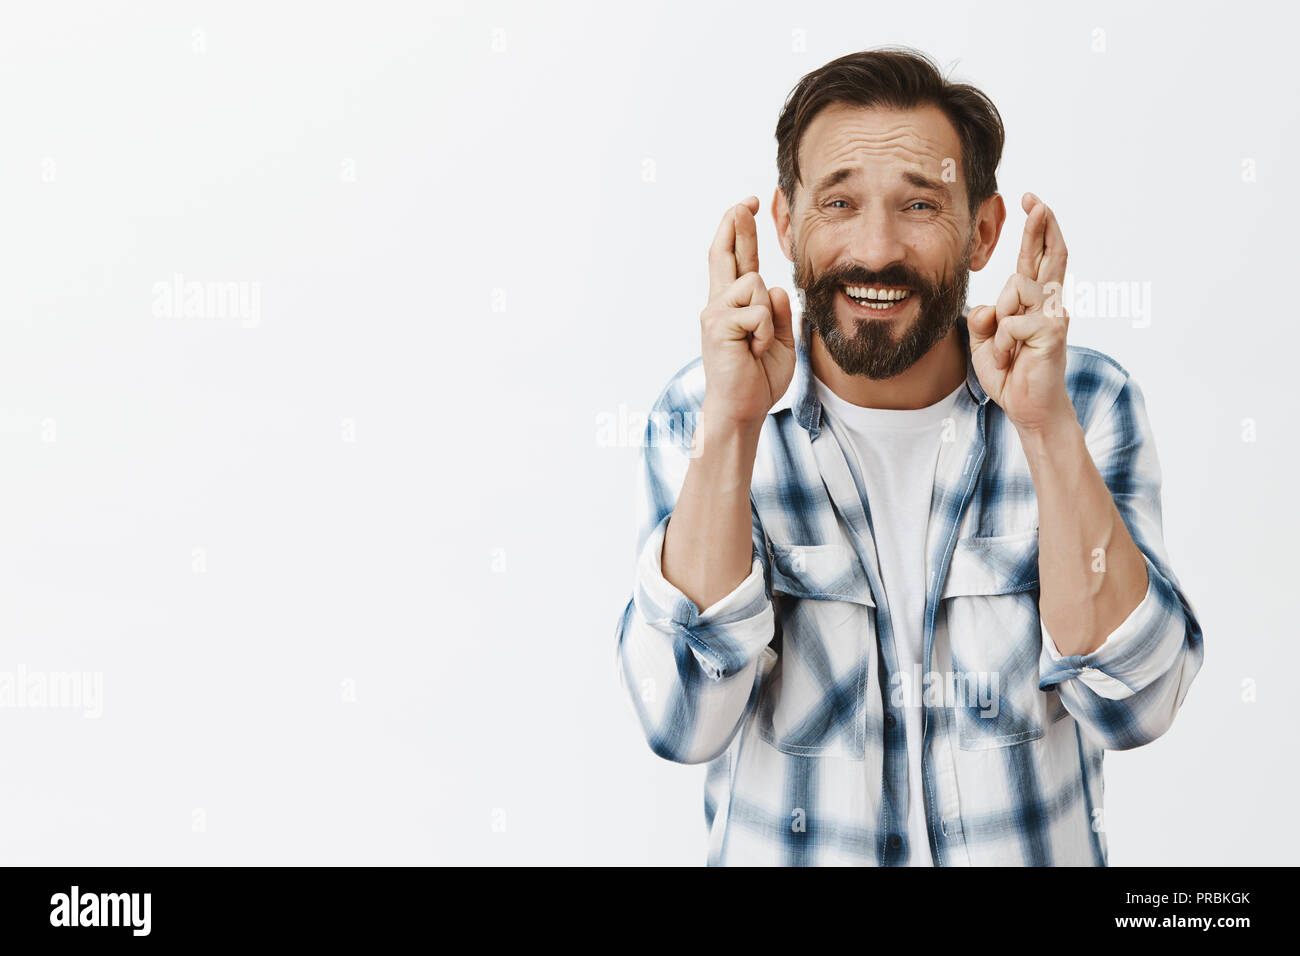 Fingers crossed for good luck. Portrait of nervous charming adult caucasian man in checked shirt, praying or making wish with worried believer face, standing hopeful over gray background - Stock Image